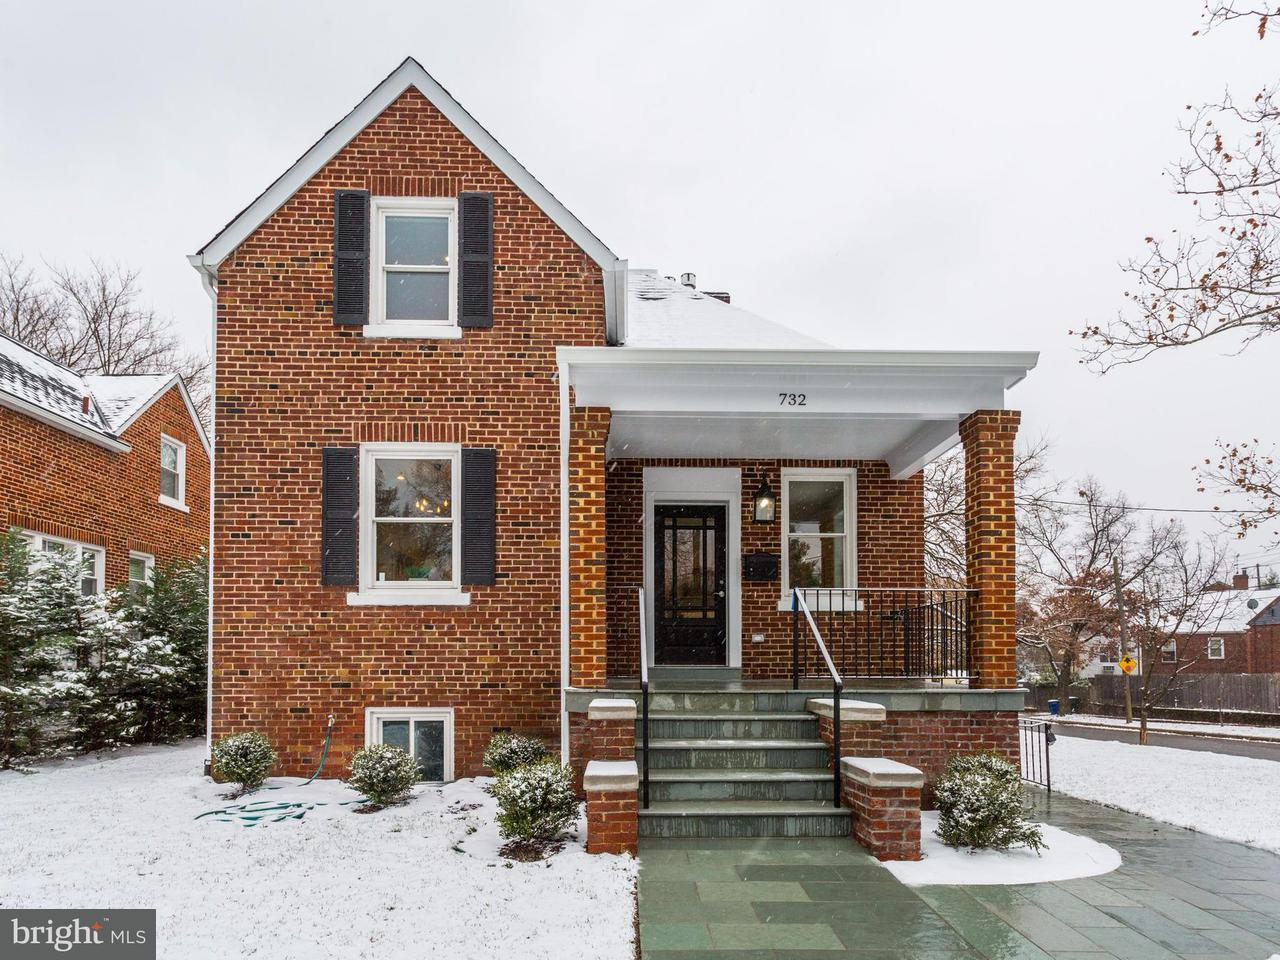 Single Family Home for Sale at 732 WHITTIER ST NW 732 WHITTIER ST NW Washington, District Of Columbia 20012 United States